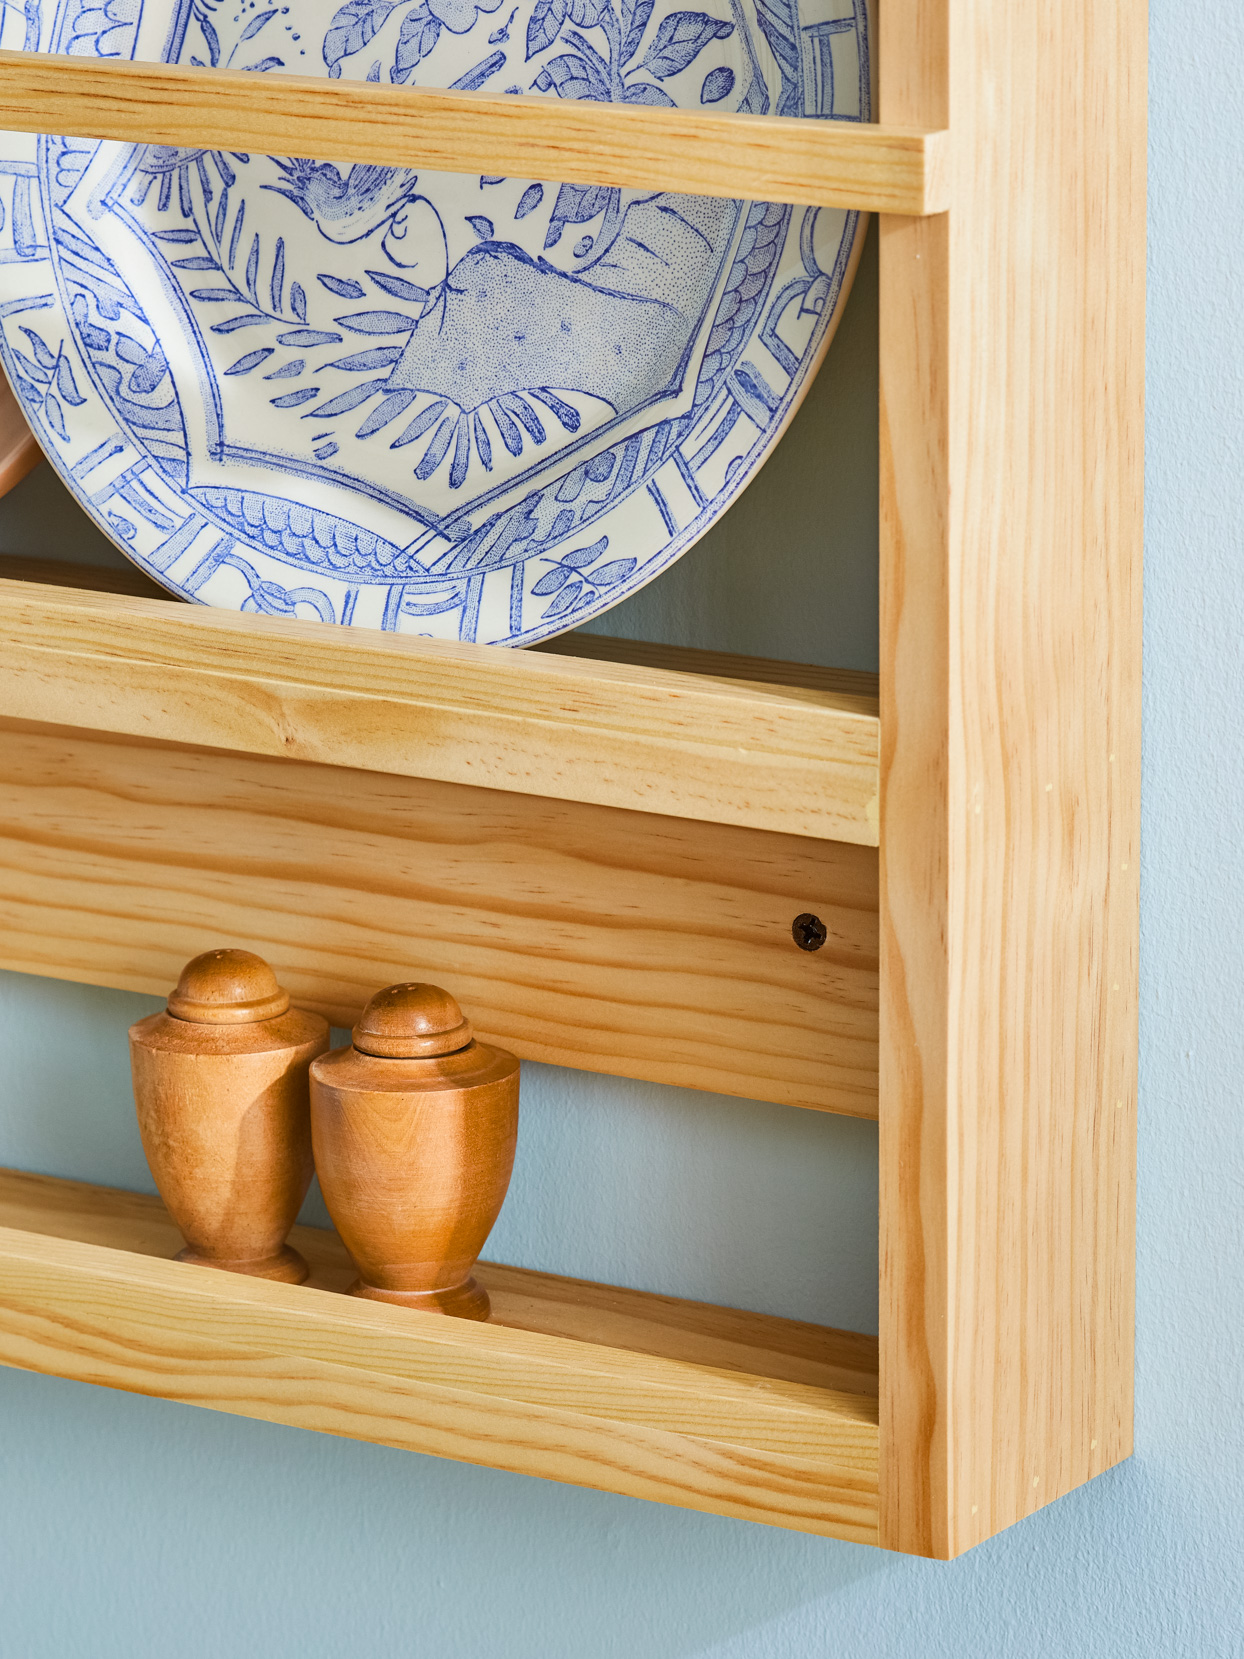 glued nailed plate stops wood rack blue wall